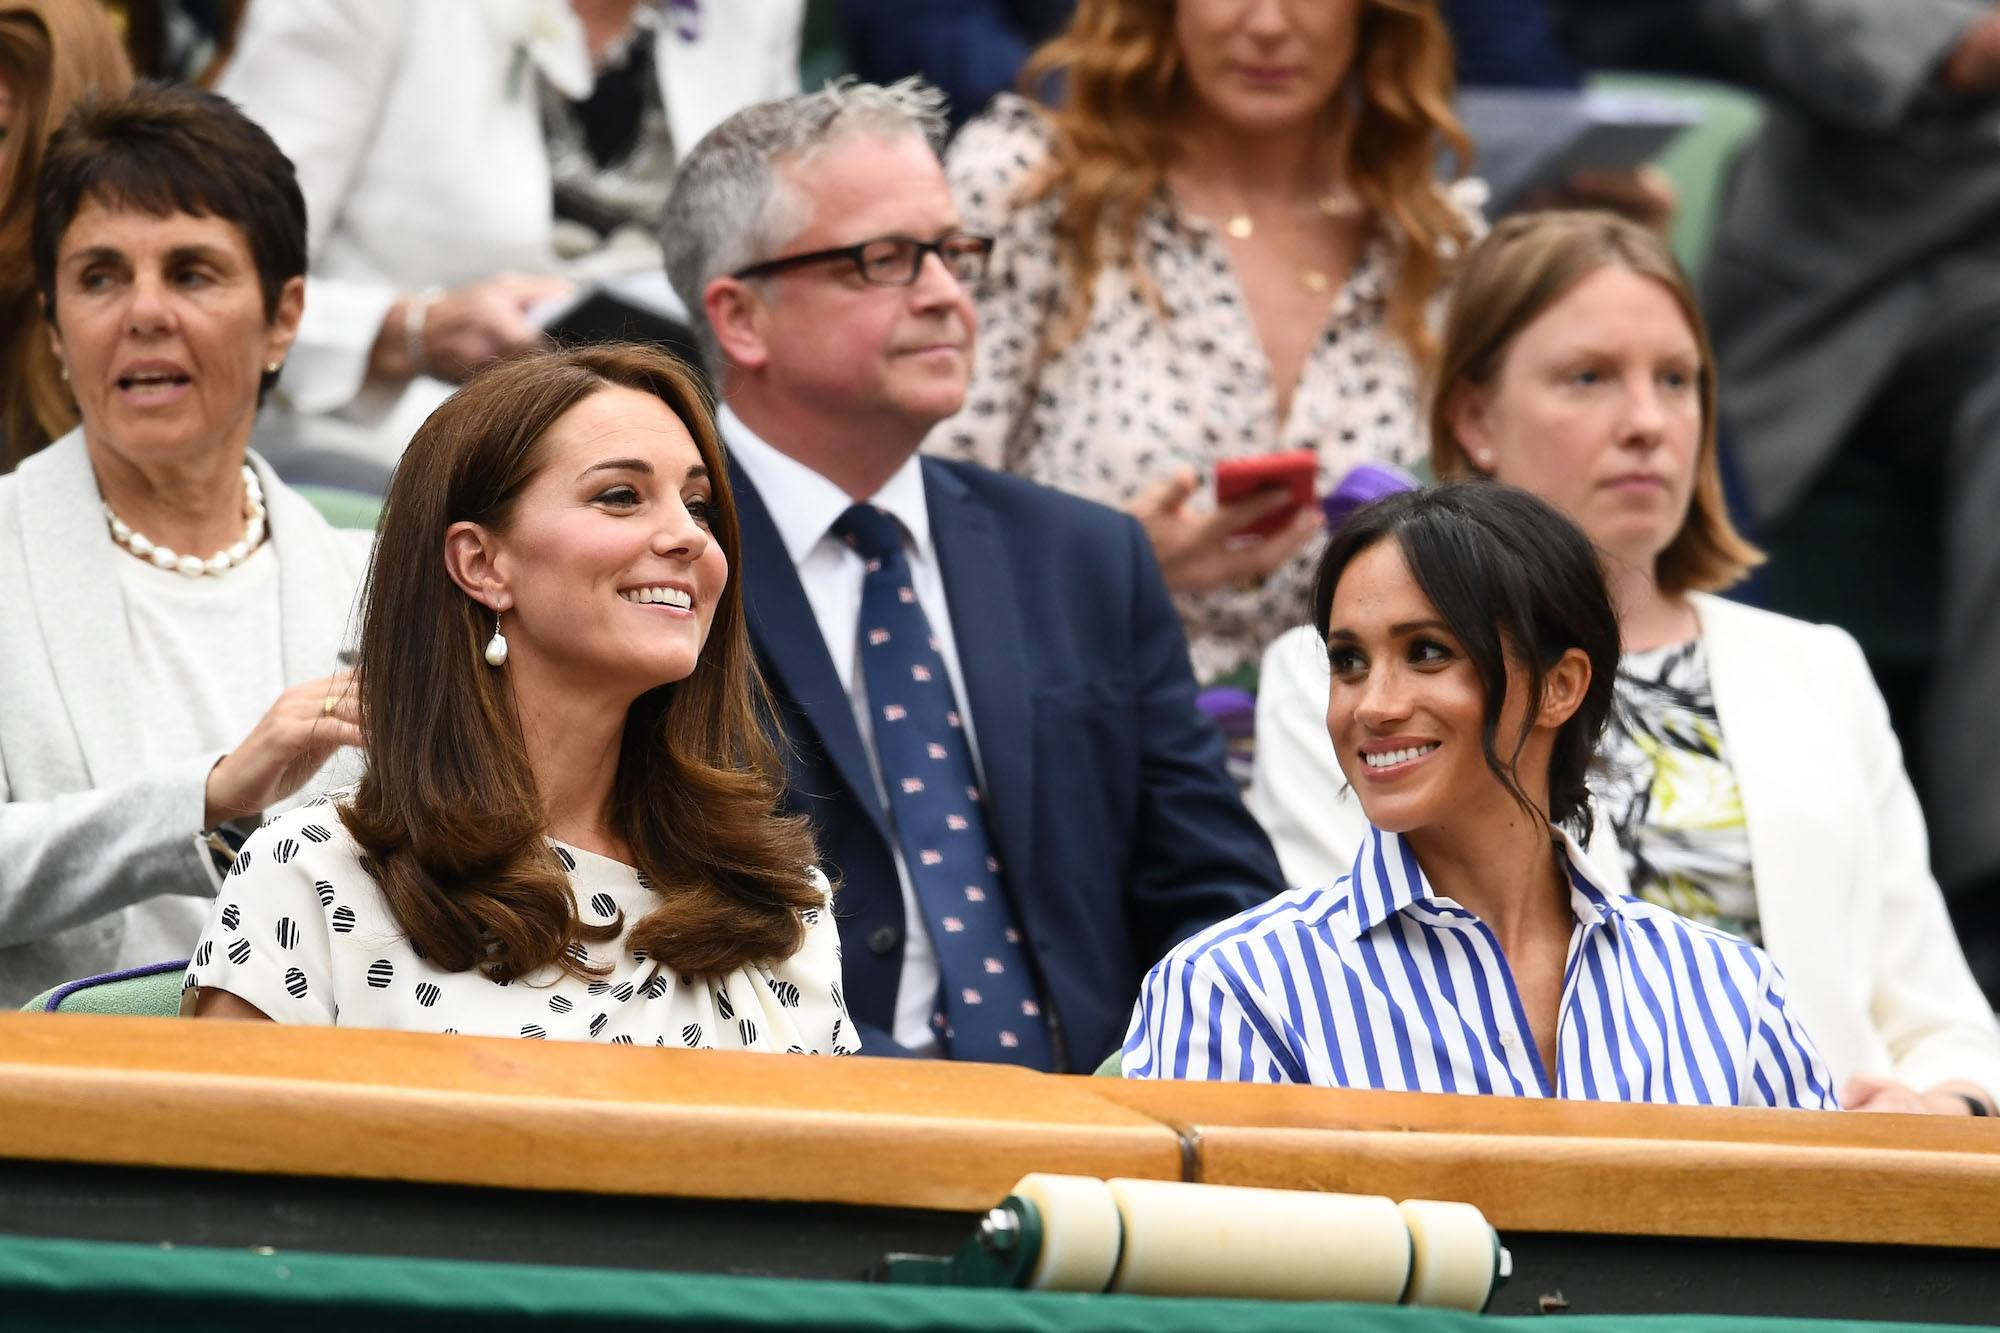 Why does Meghan Markle have to curtsy to Kate Middleton